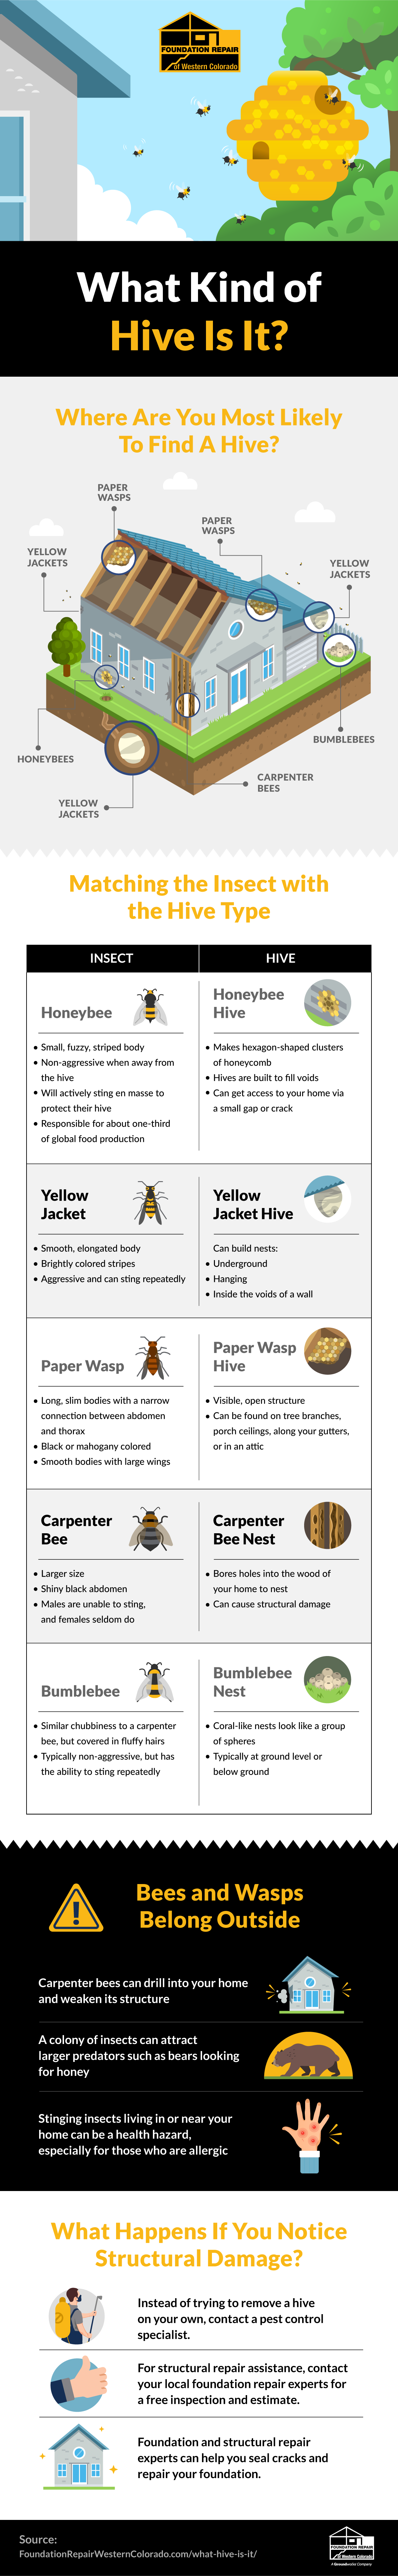 Removing Bee and Wasp Hives From Your Home